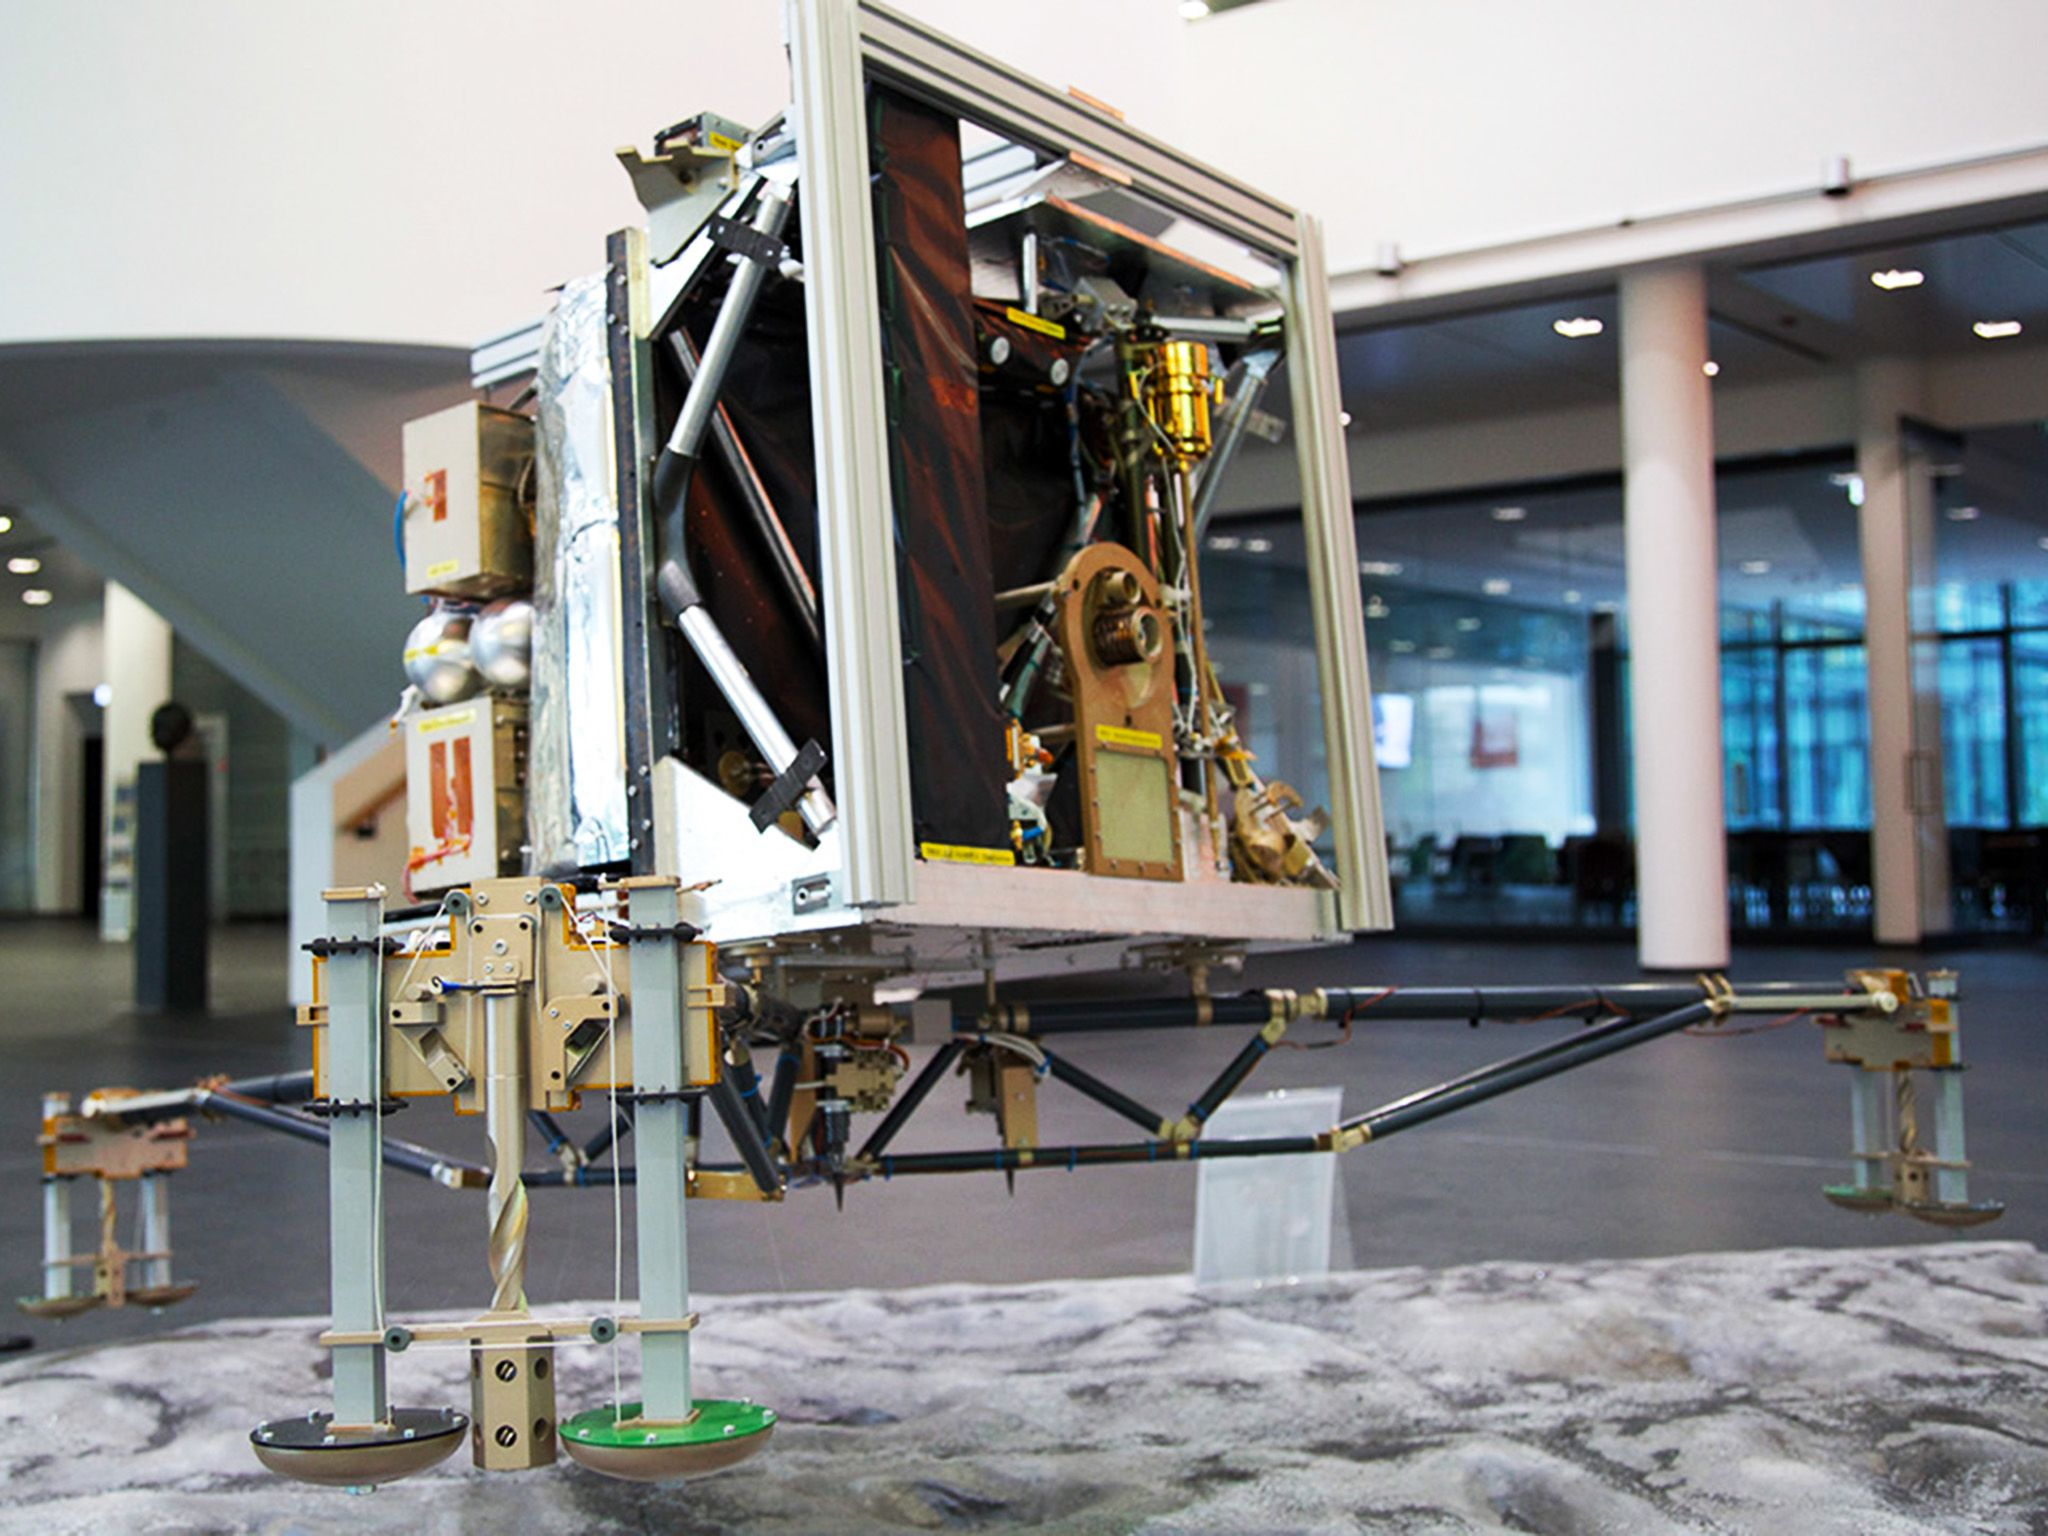 Max Planck Institute of Solar System Research, Gottingen, Germany: Philae Replica - Max Planck... [Photo of the day - November 2014]